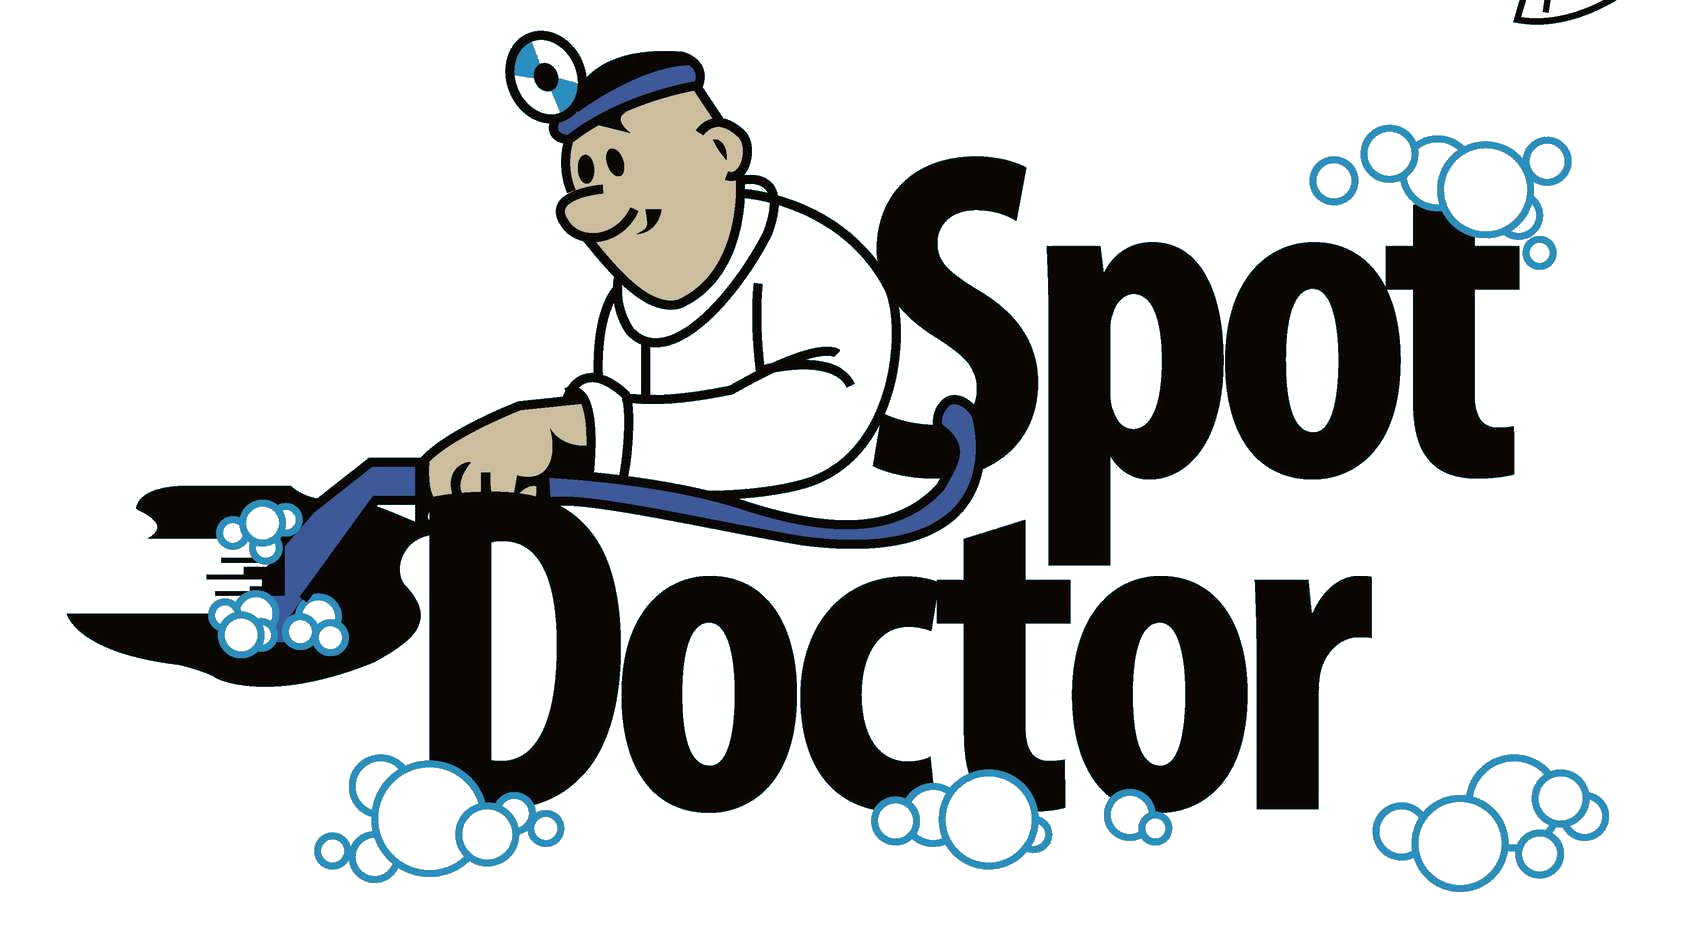 The Spot Doctor Logo